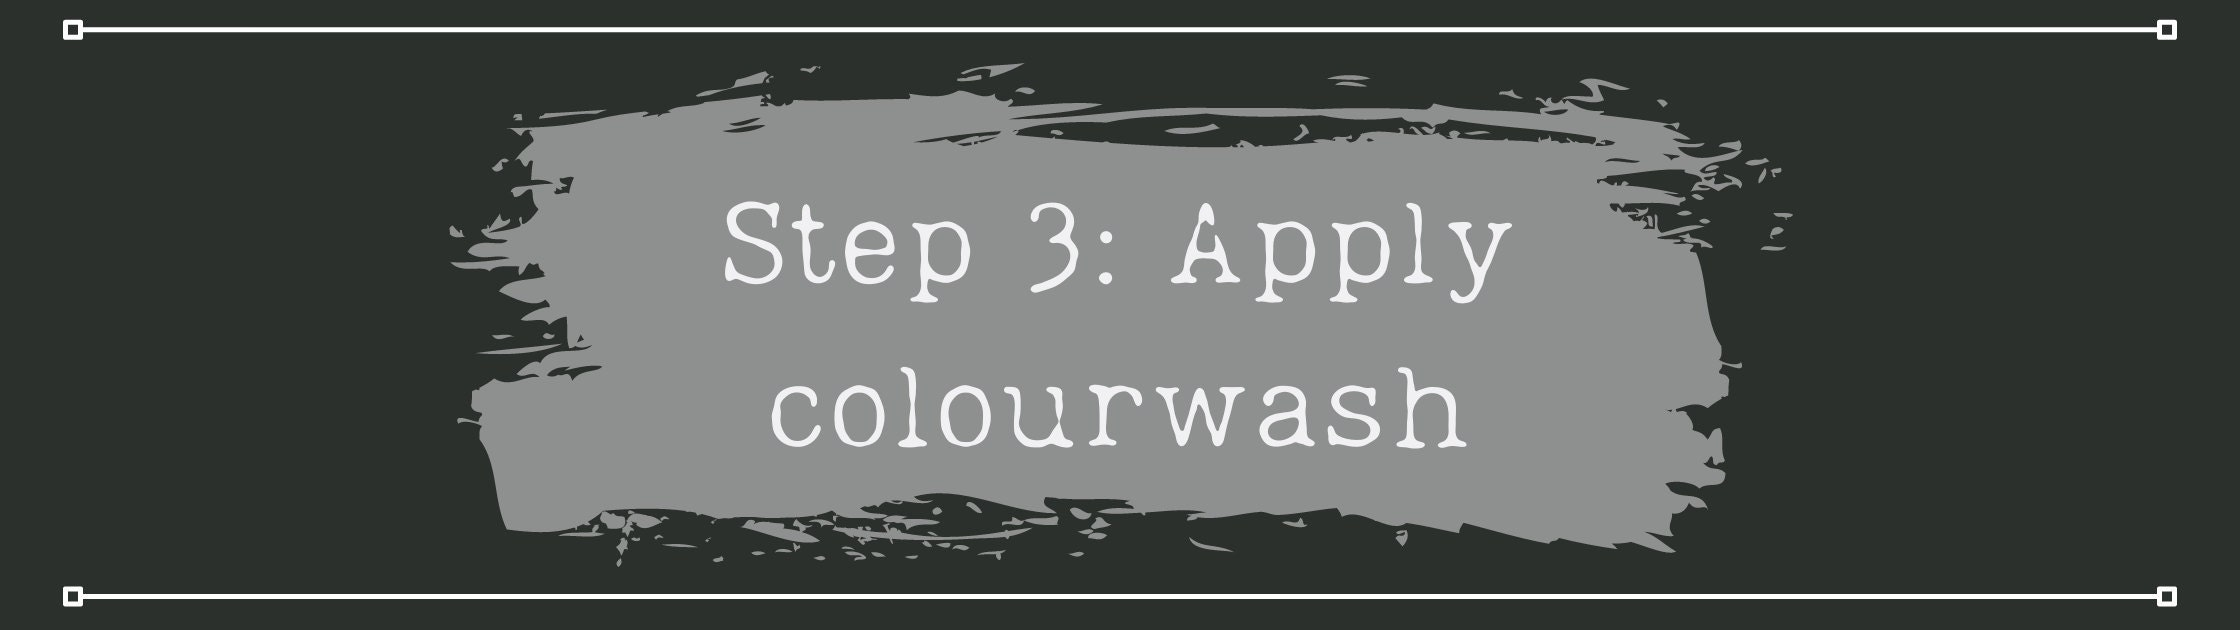 How to apply colourwash